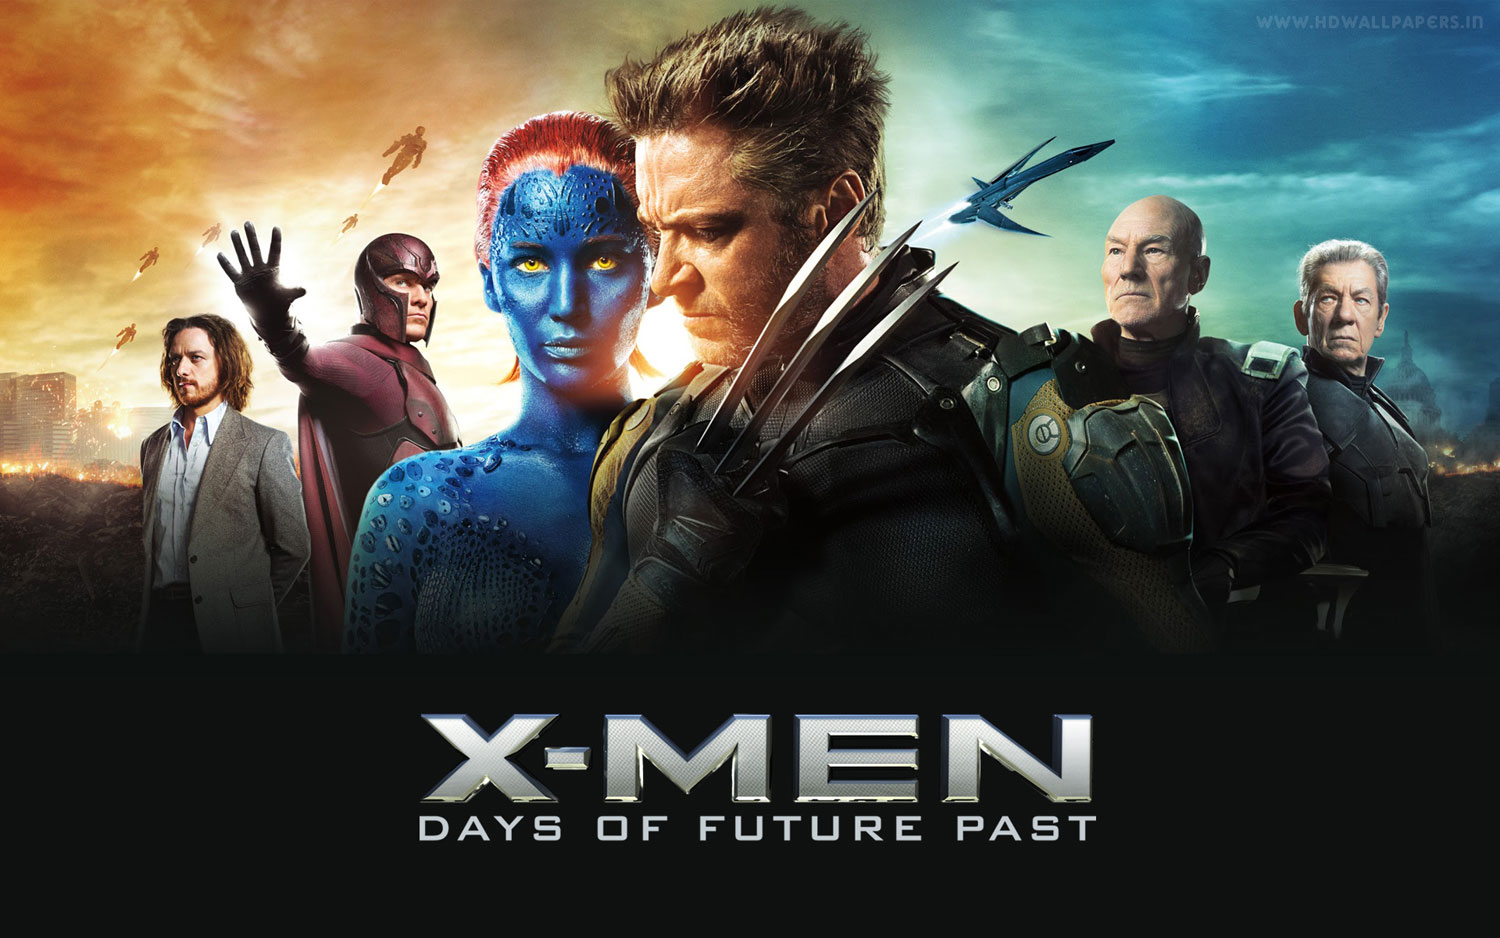 X-Men: Days of Future Past is arguably the best X-Men film to date. Released in 2014, this film's plot is interesting as Wolverine goes into the past in order to change history. Although X2: X-Men United was a great film, the features and special effects in Days of Future Past give it the edge.